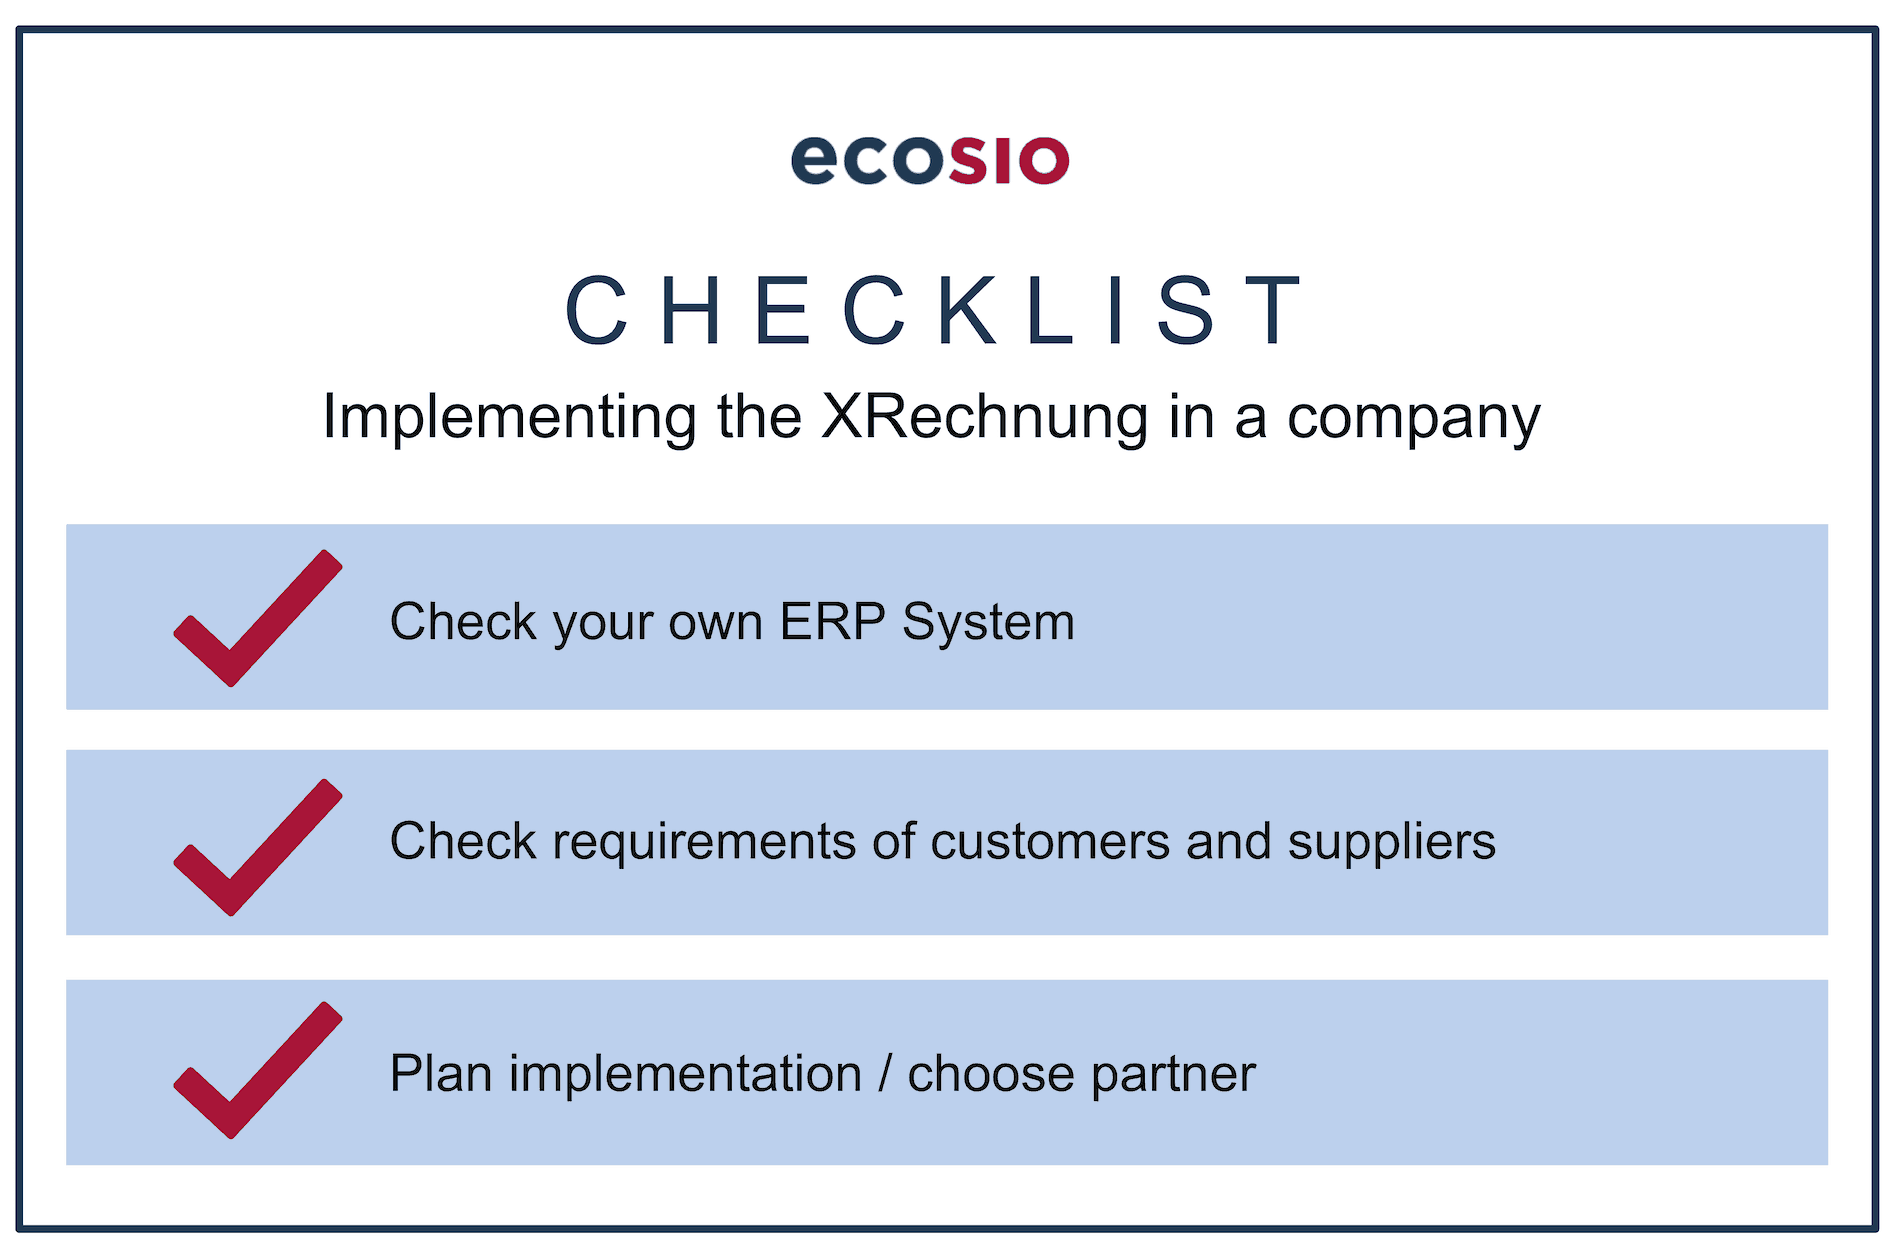 The Necessary Steps to Successfully Implement the XRechnung Standard in the Company